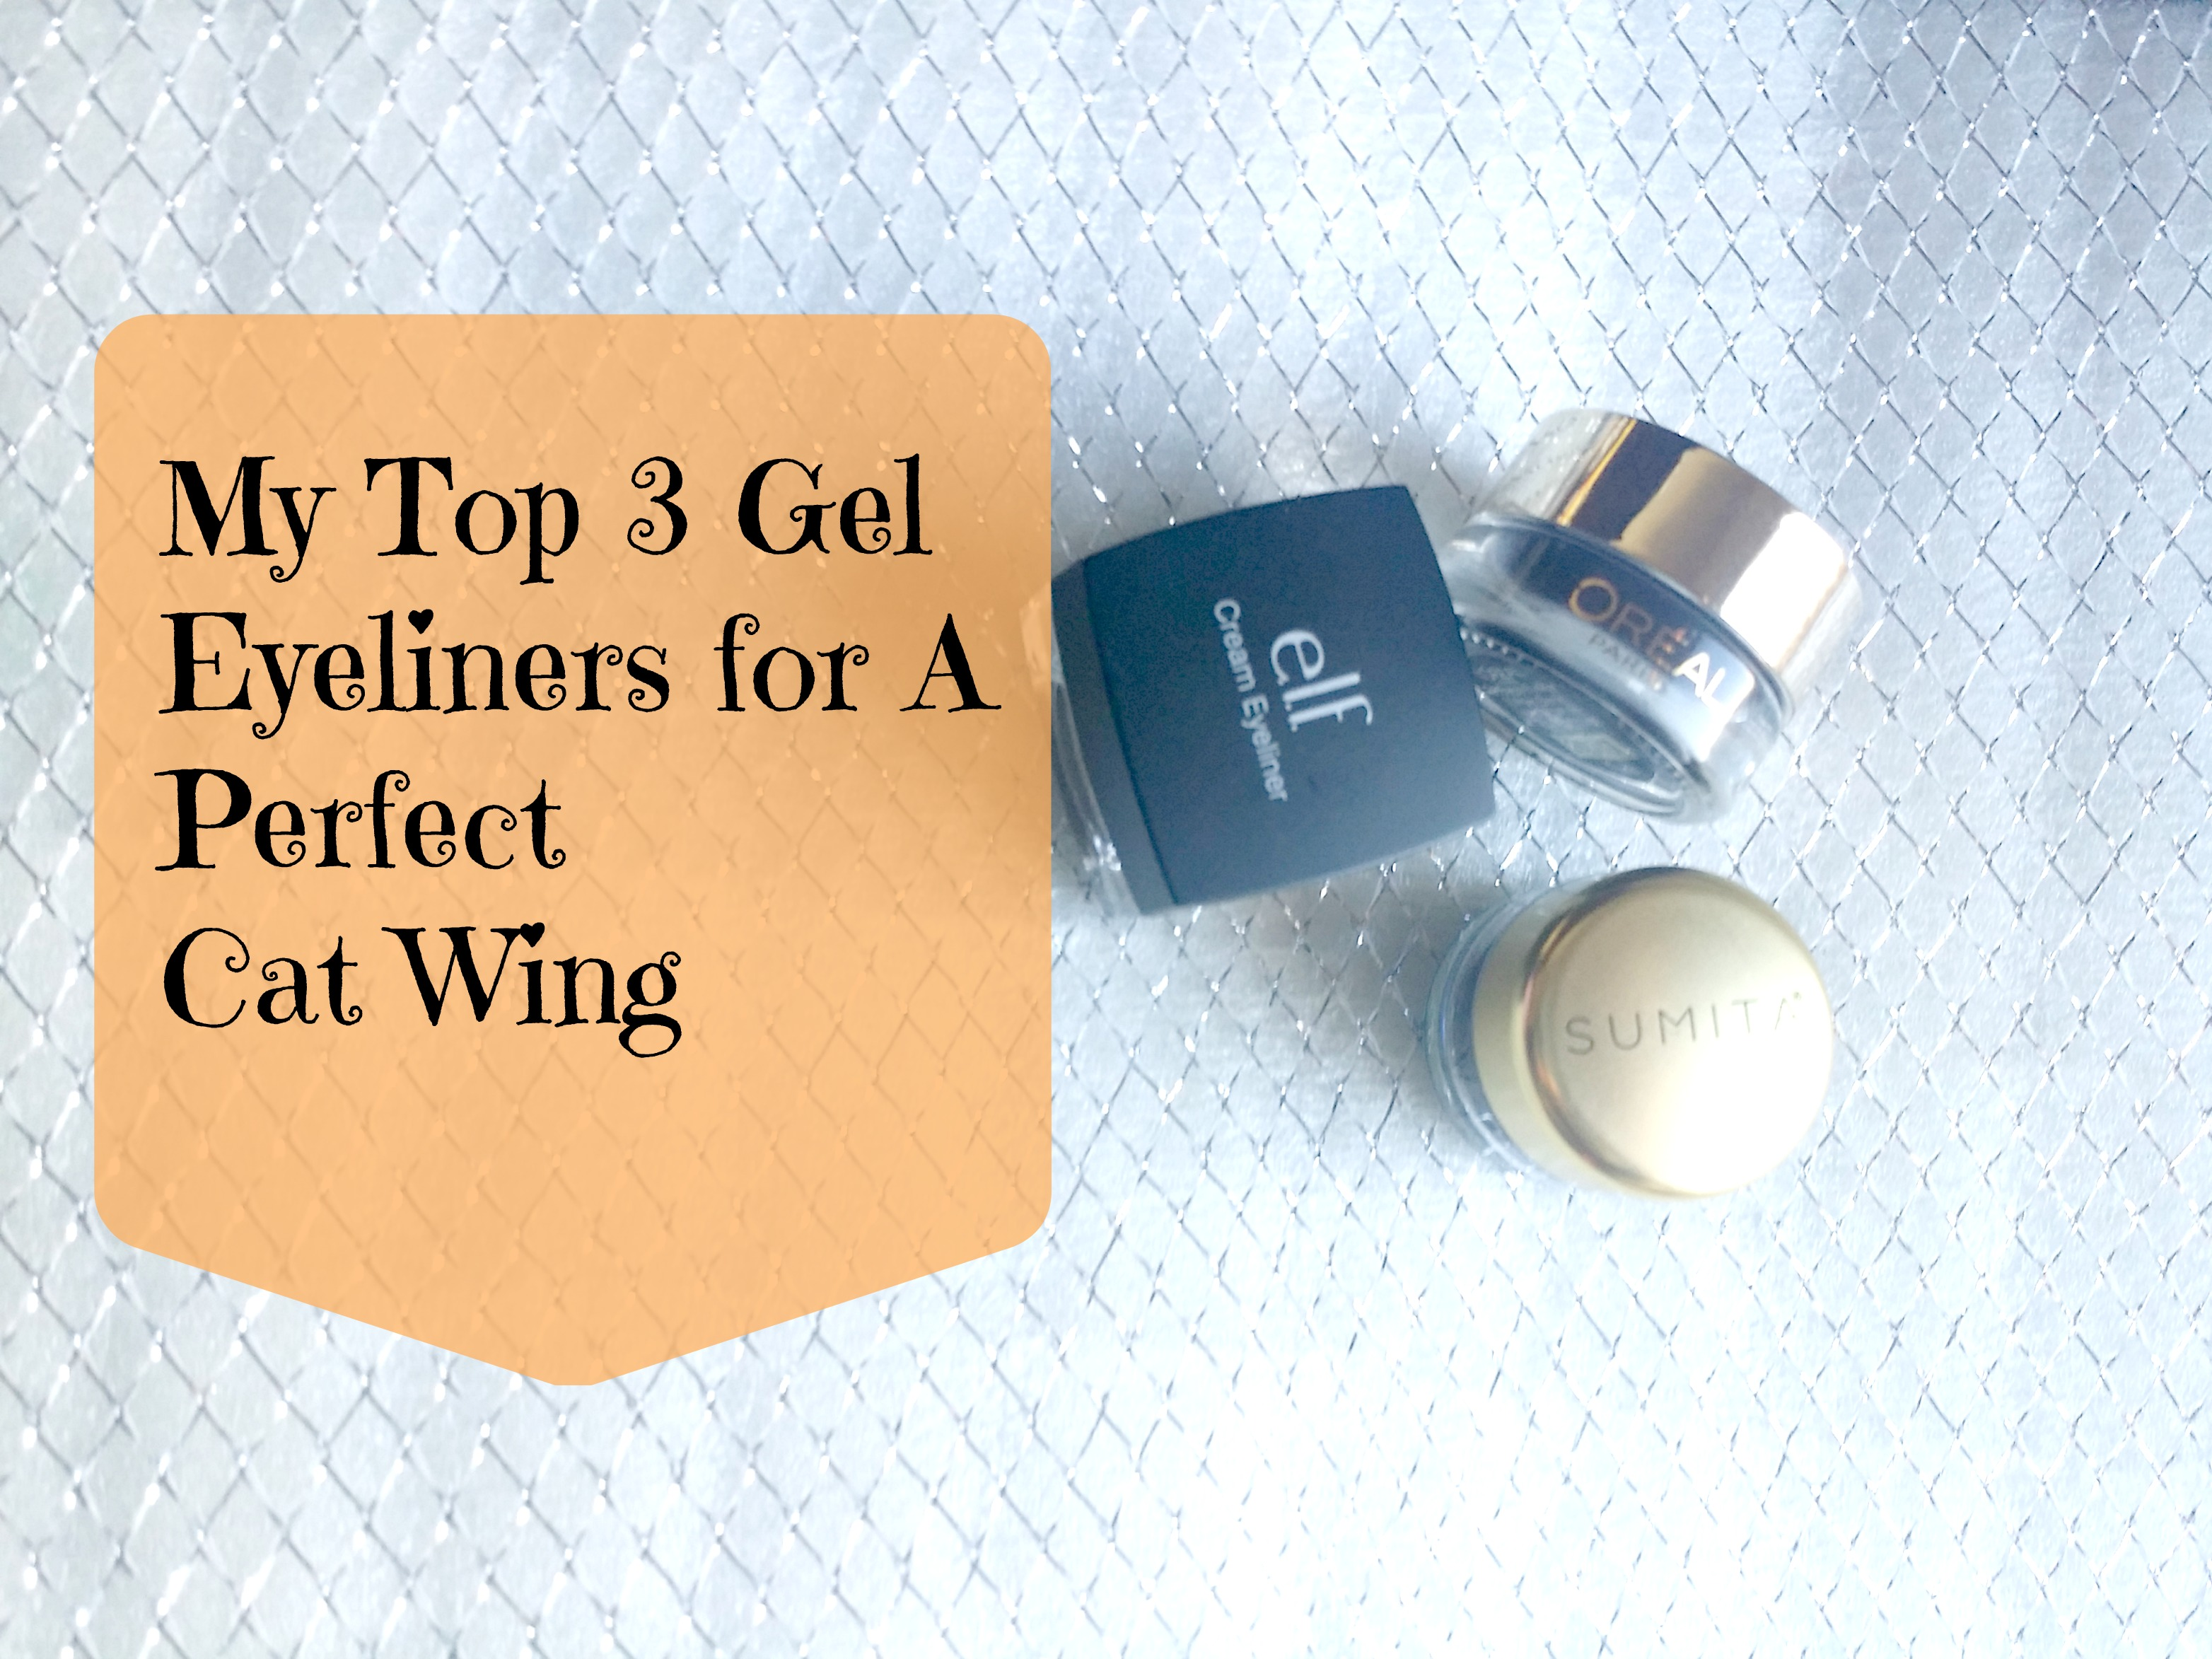 My Top 3 Best Gel Eyeliners for A Perfect Cat Wing